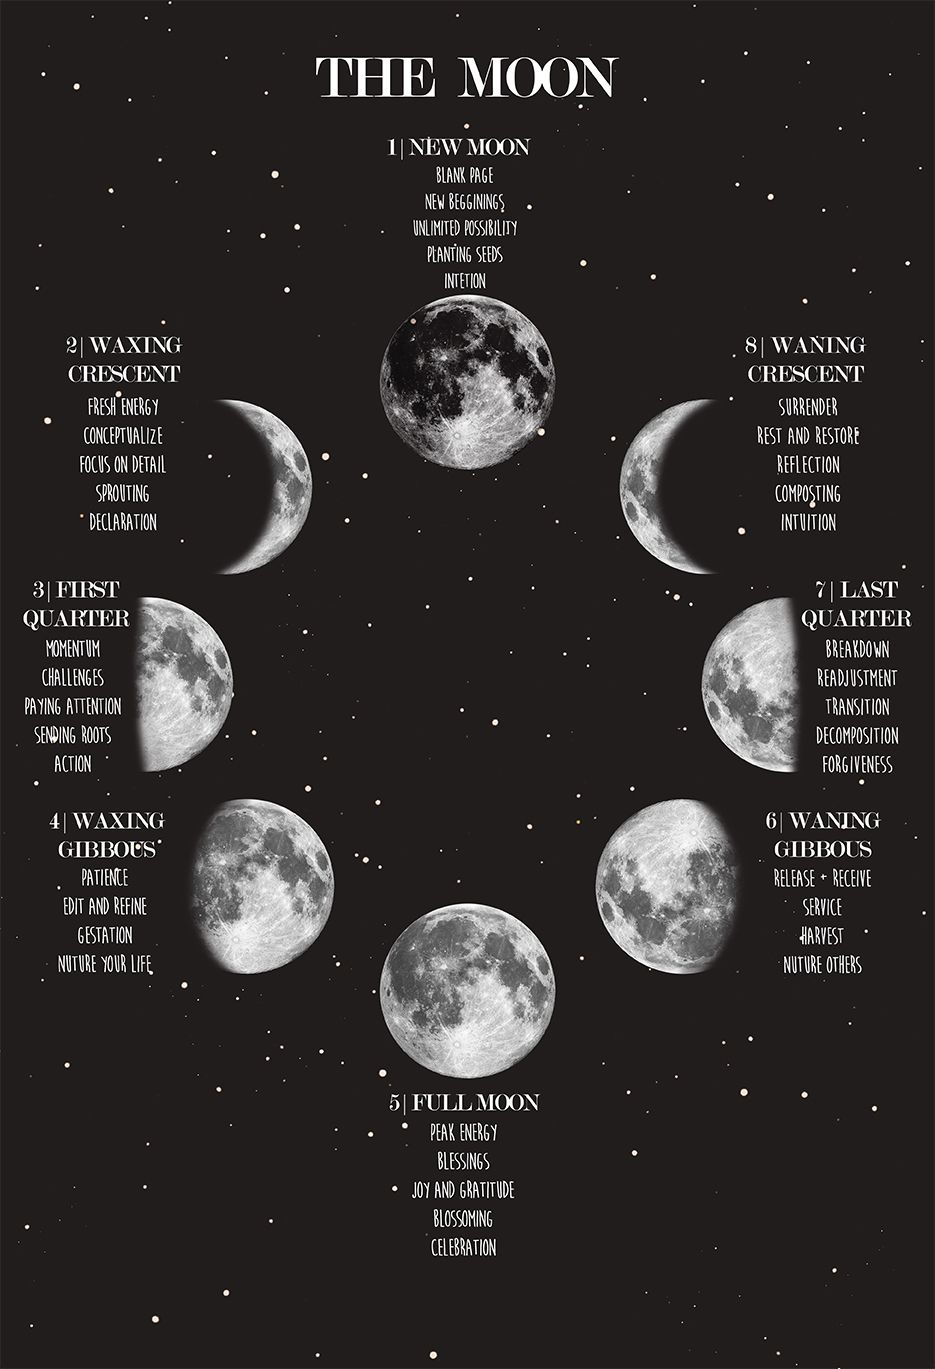 Photo of Moon Phase Poster, Lunar Phases and Meanings, Space Poster, Night Sky Print, Witch Art, Celestial